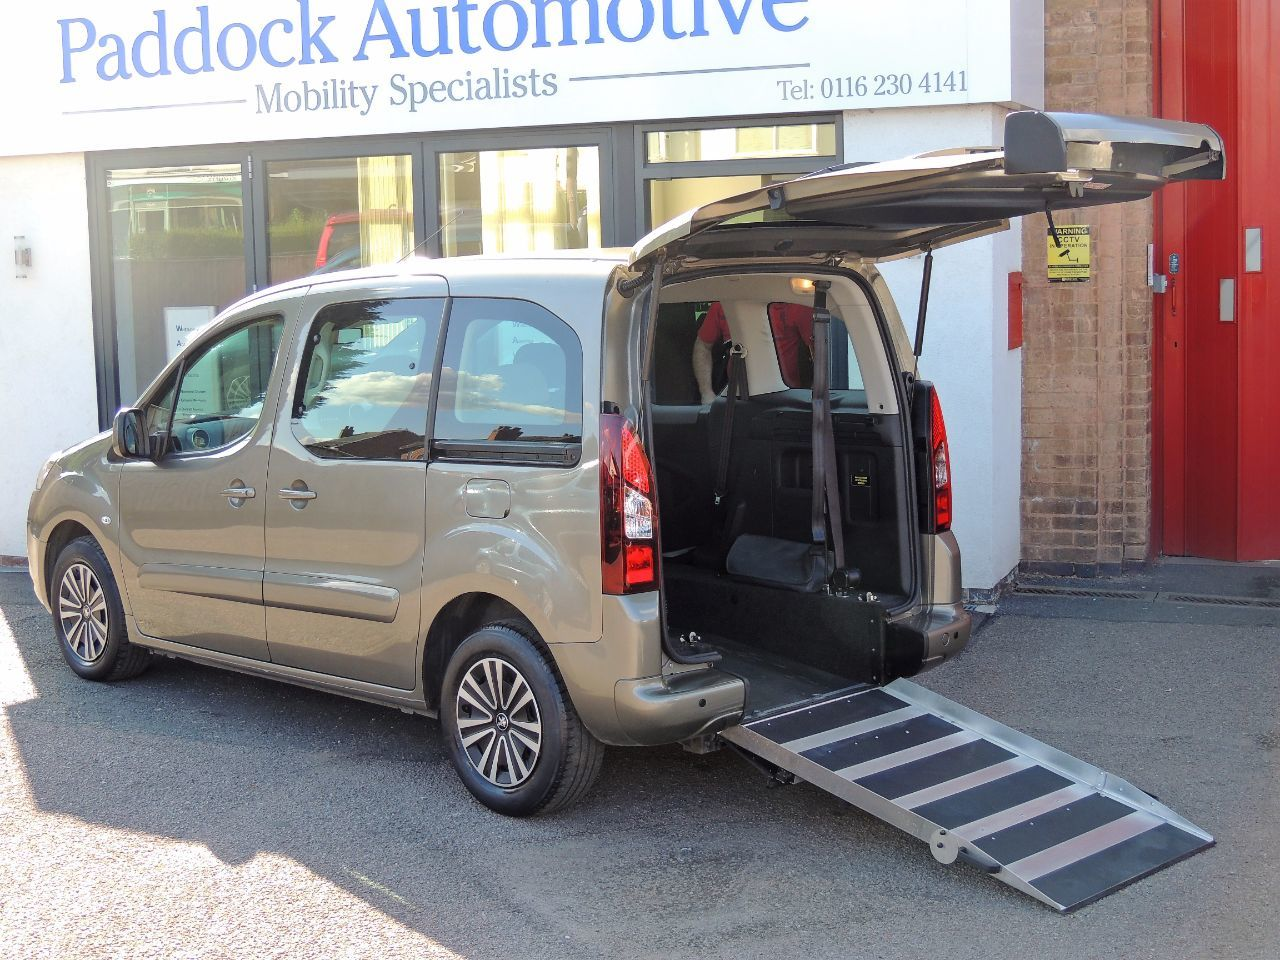 Peugeot Partner Tepee S 1.6 HDi Automatic Disabled Wheelchair Adapted Vehicle WAV Wheelchair Adapted Diesel Nocciola Bronze Mica